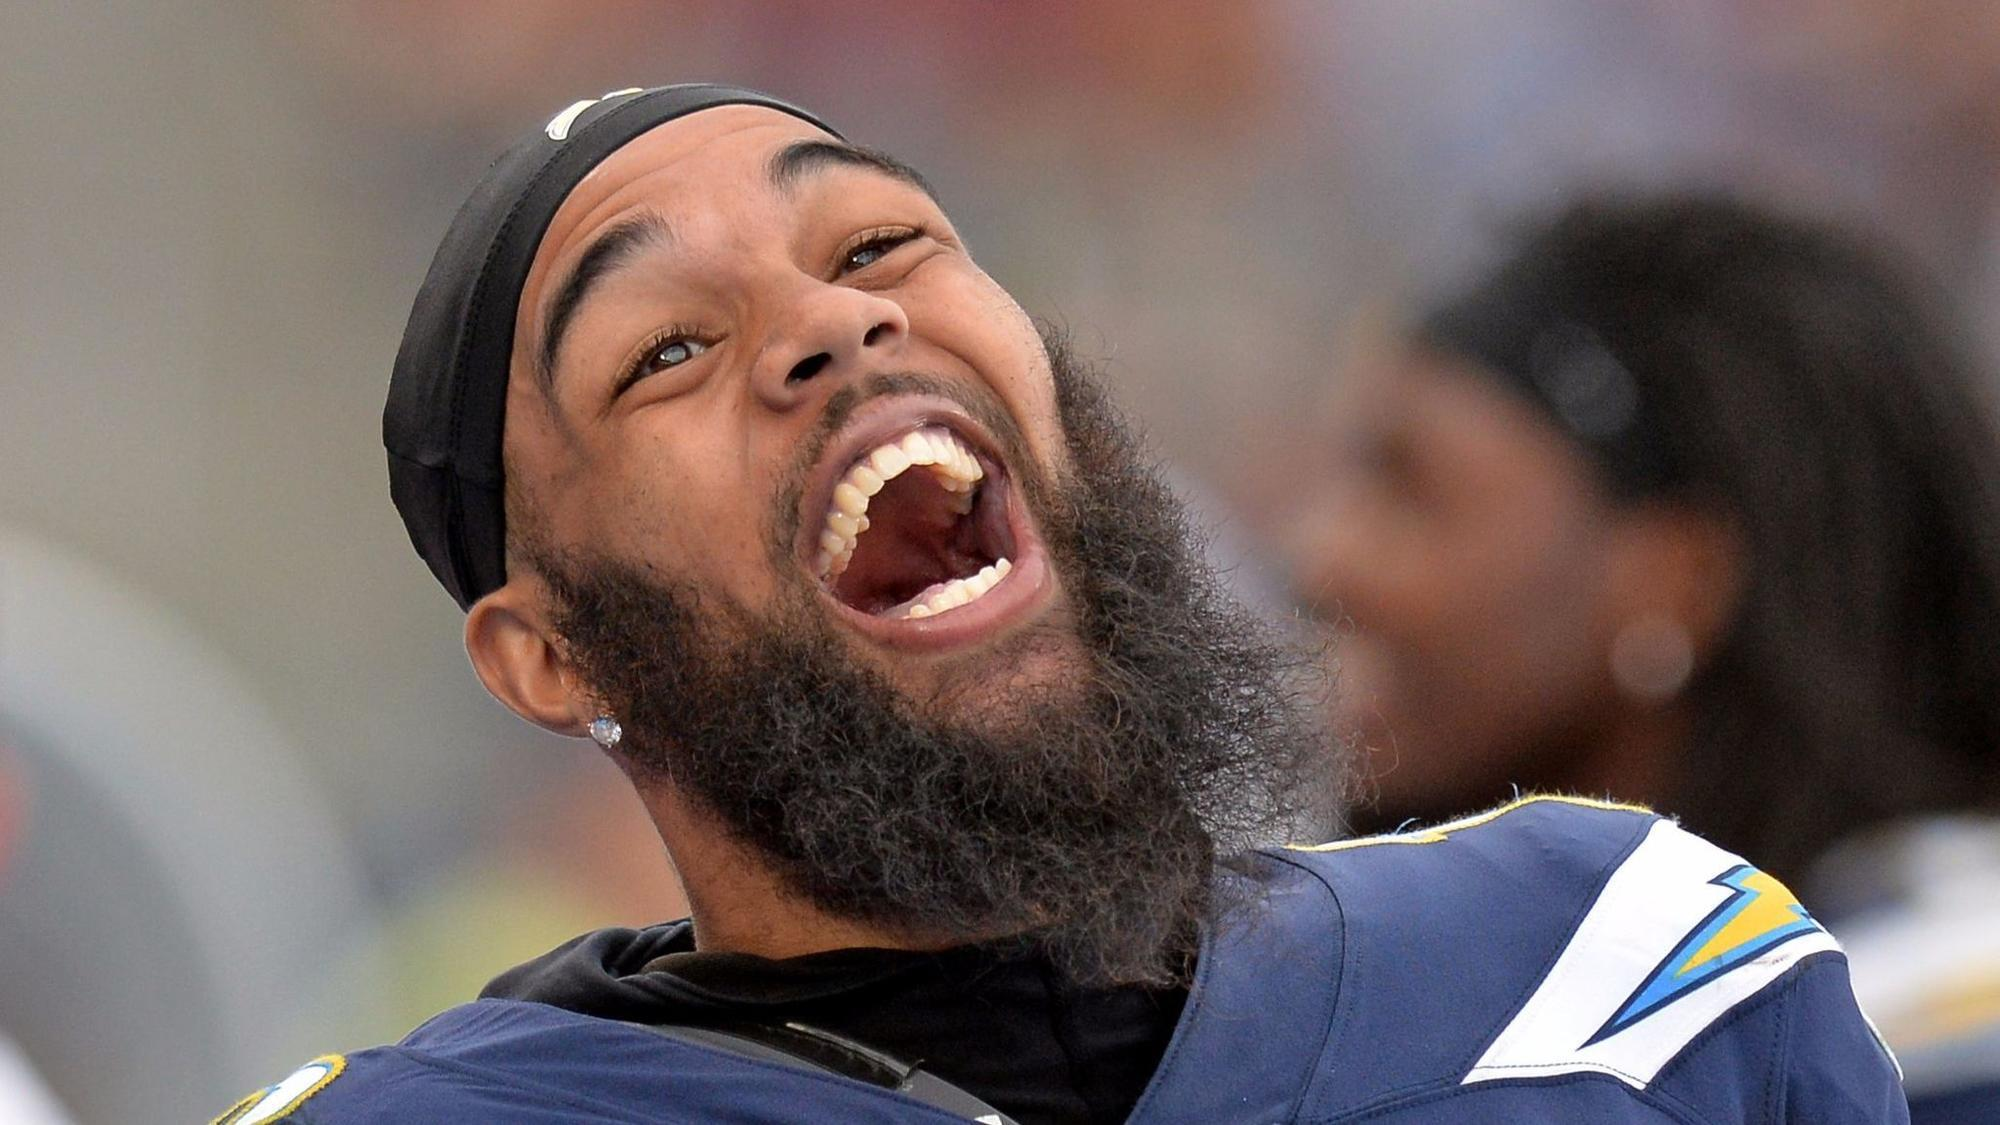 Sd-sp-chargers-keenan-allen-goes-against-darrell-revis-chiefs-chargers-rematch-20171213